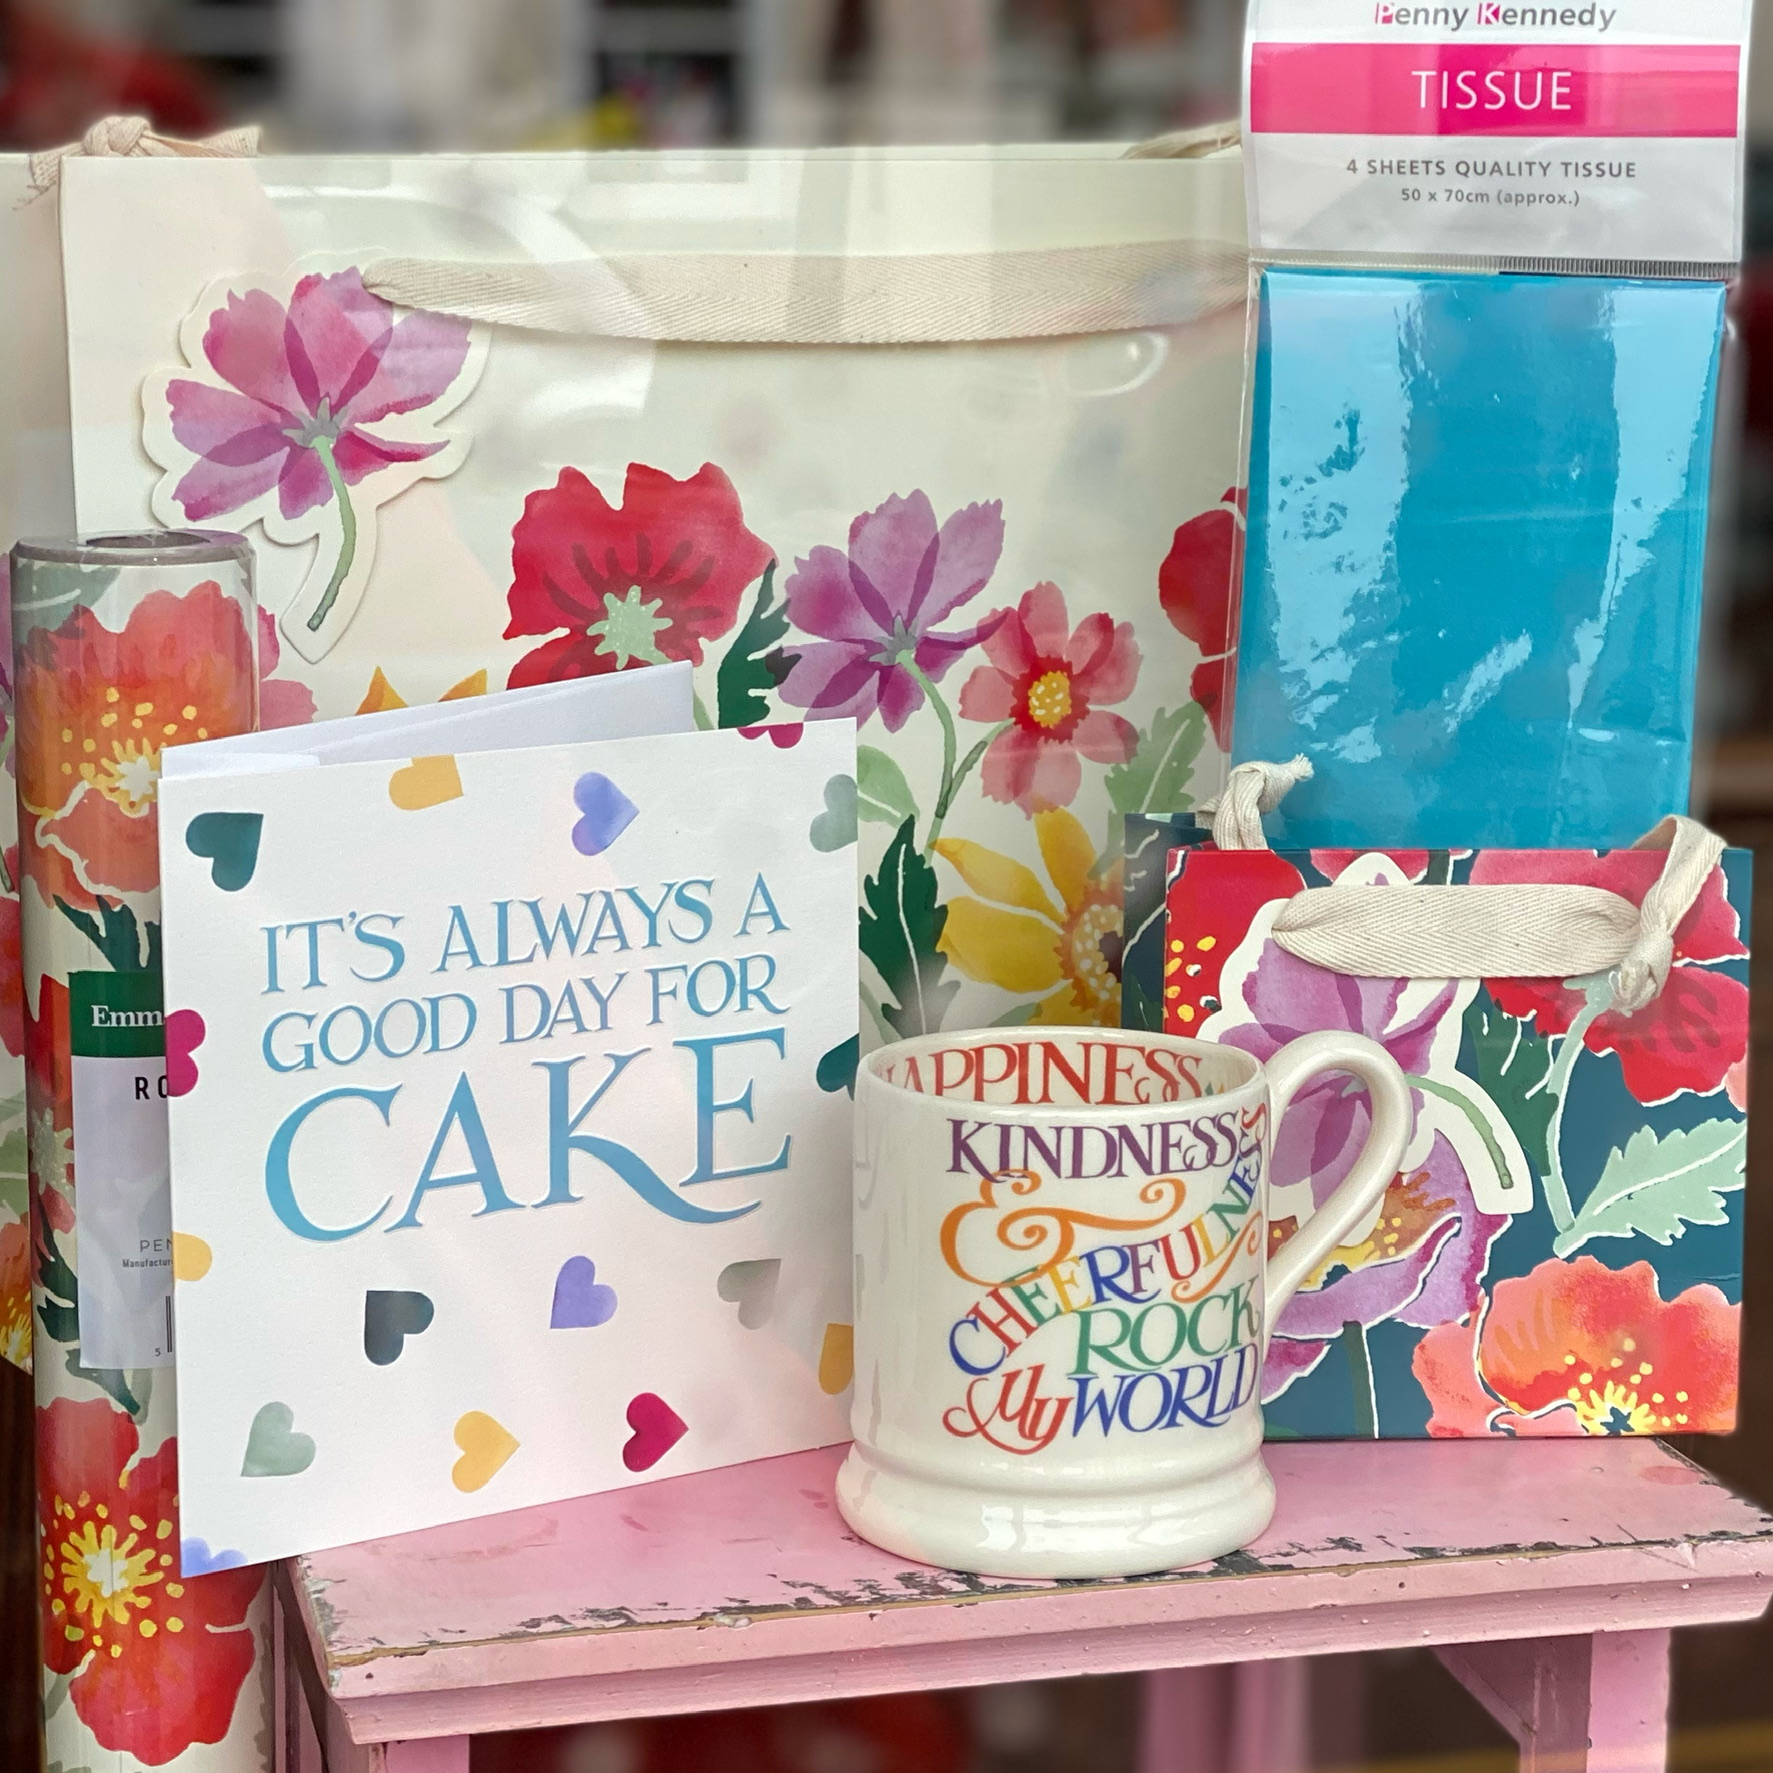 Above: Emma Bridgewater cards from Woodmansterne are among the faves of Daisy Park's customers in South Molton.